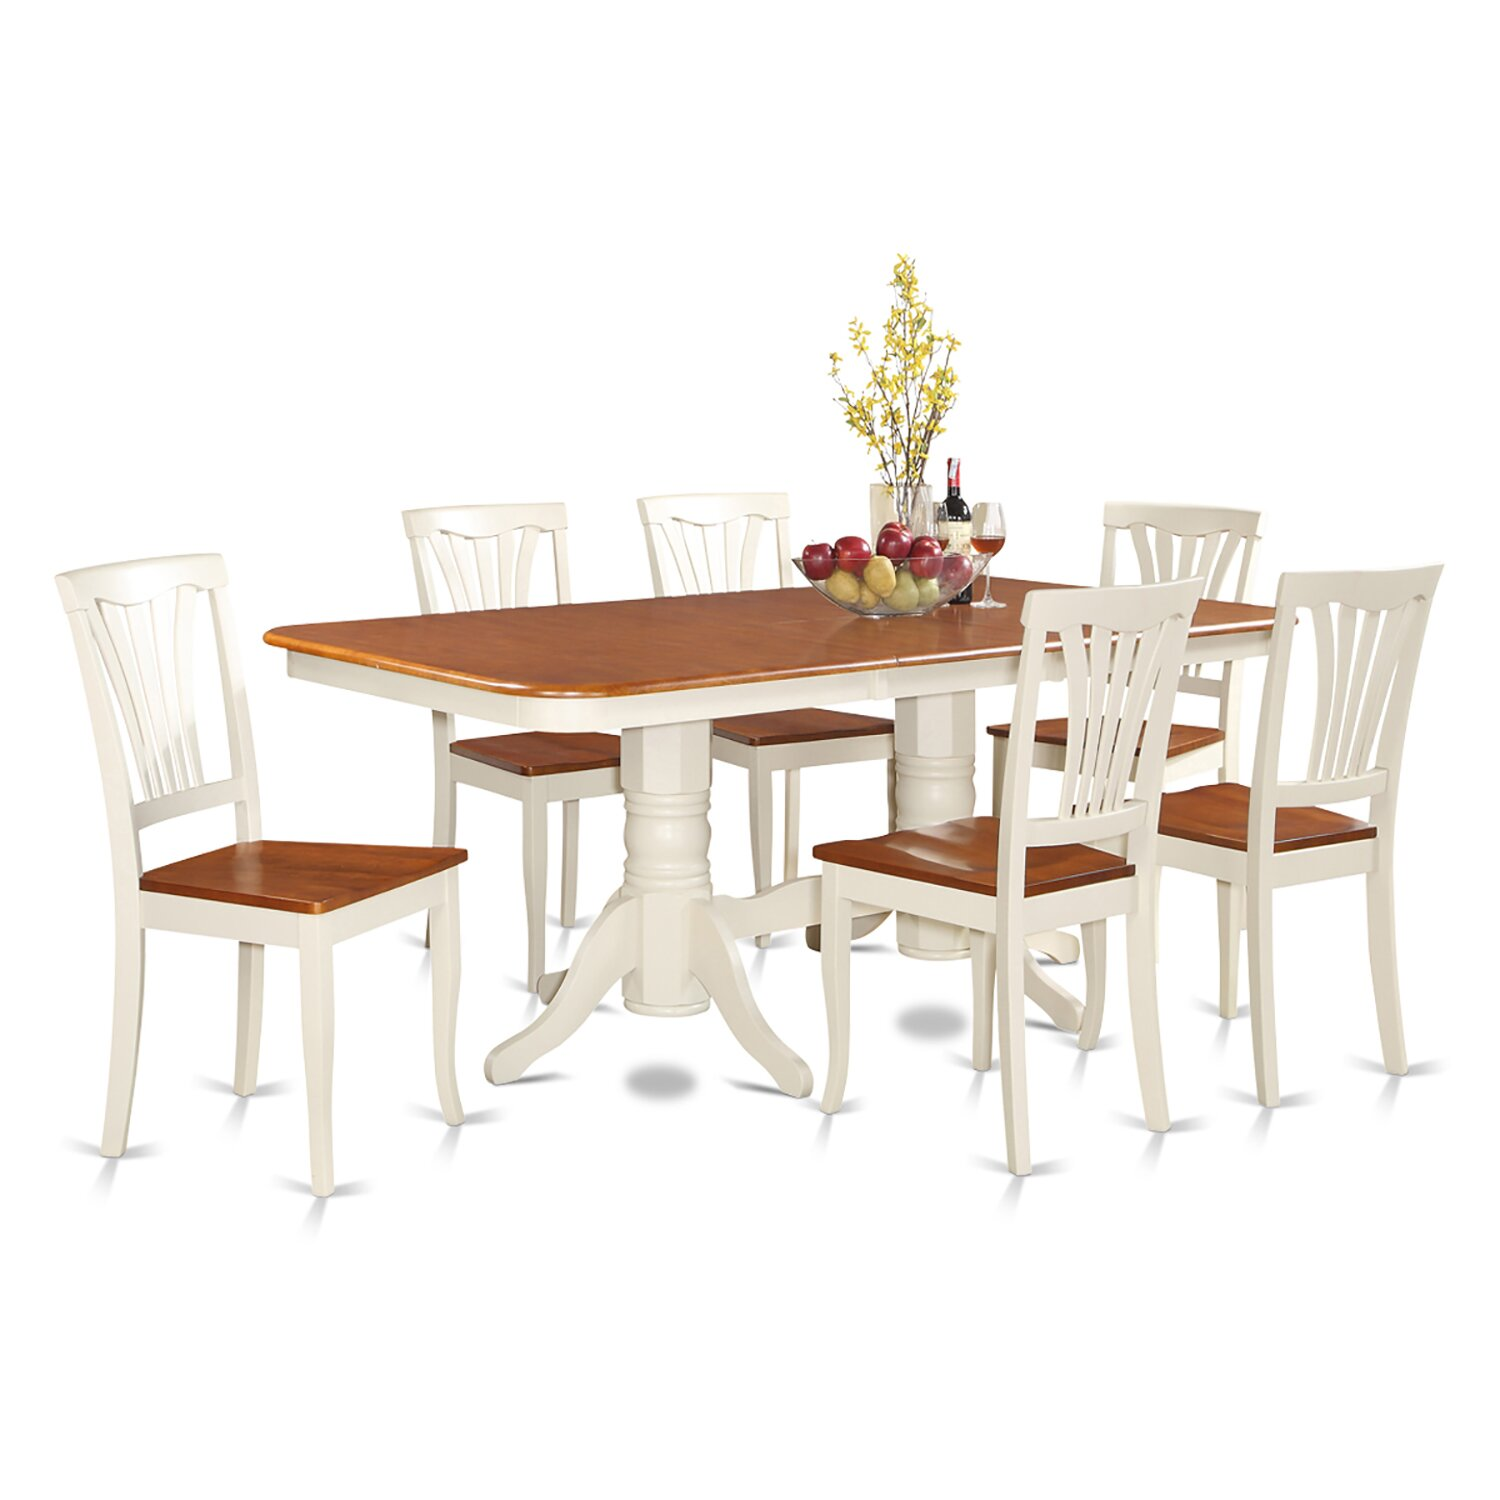 Wooden importers napoleon 7 piece dining set reviews wayfair - Pc dining room set ...